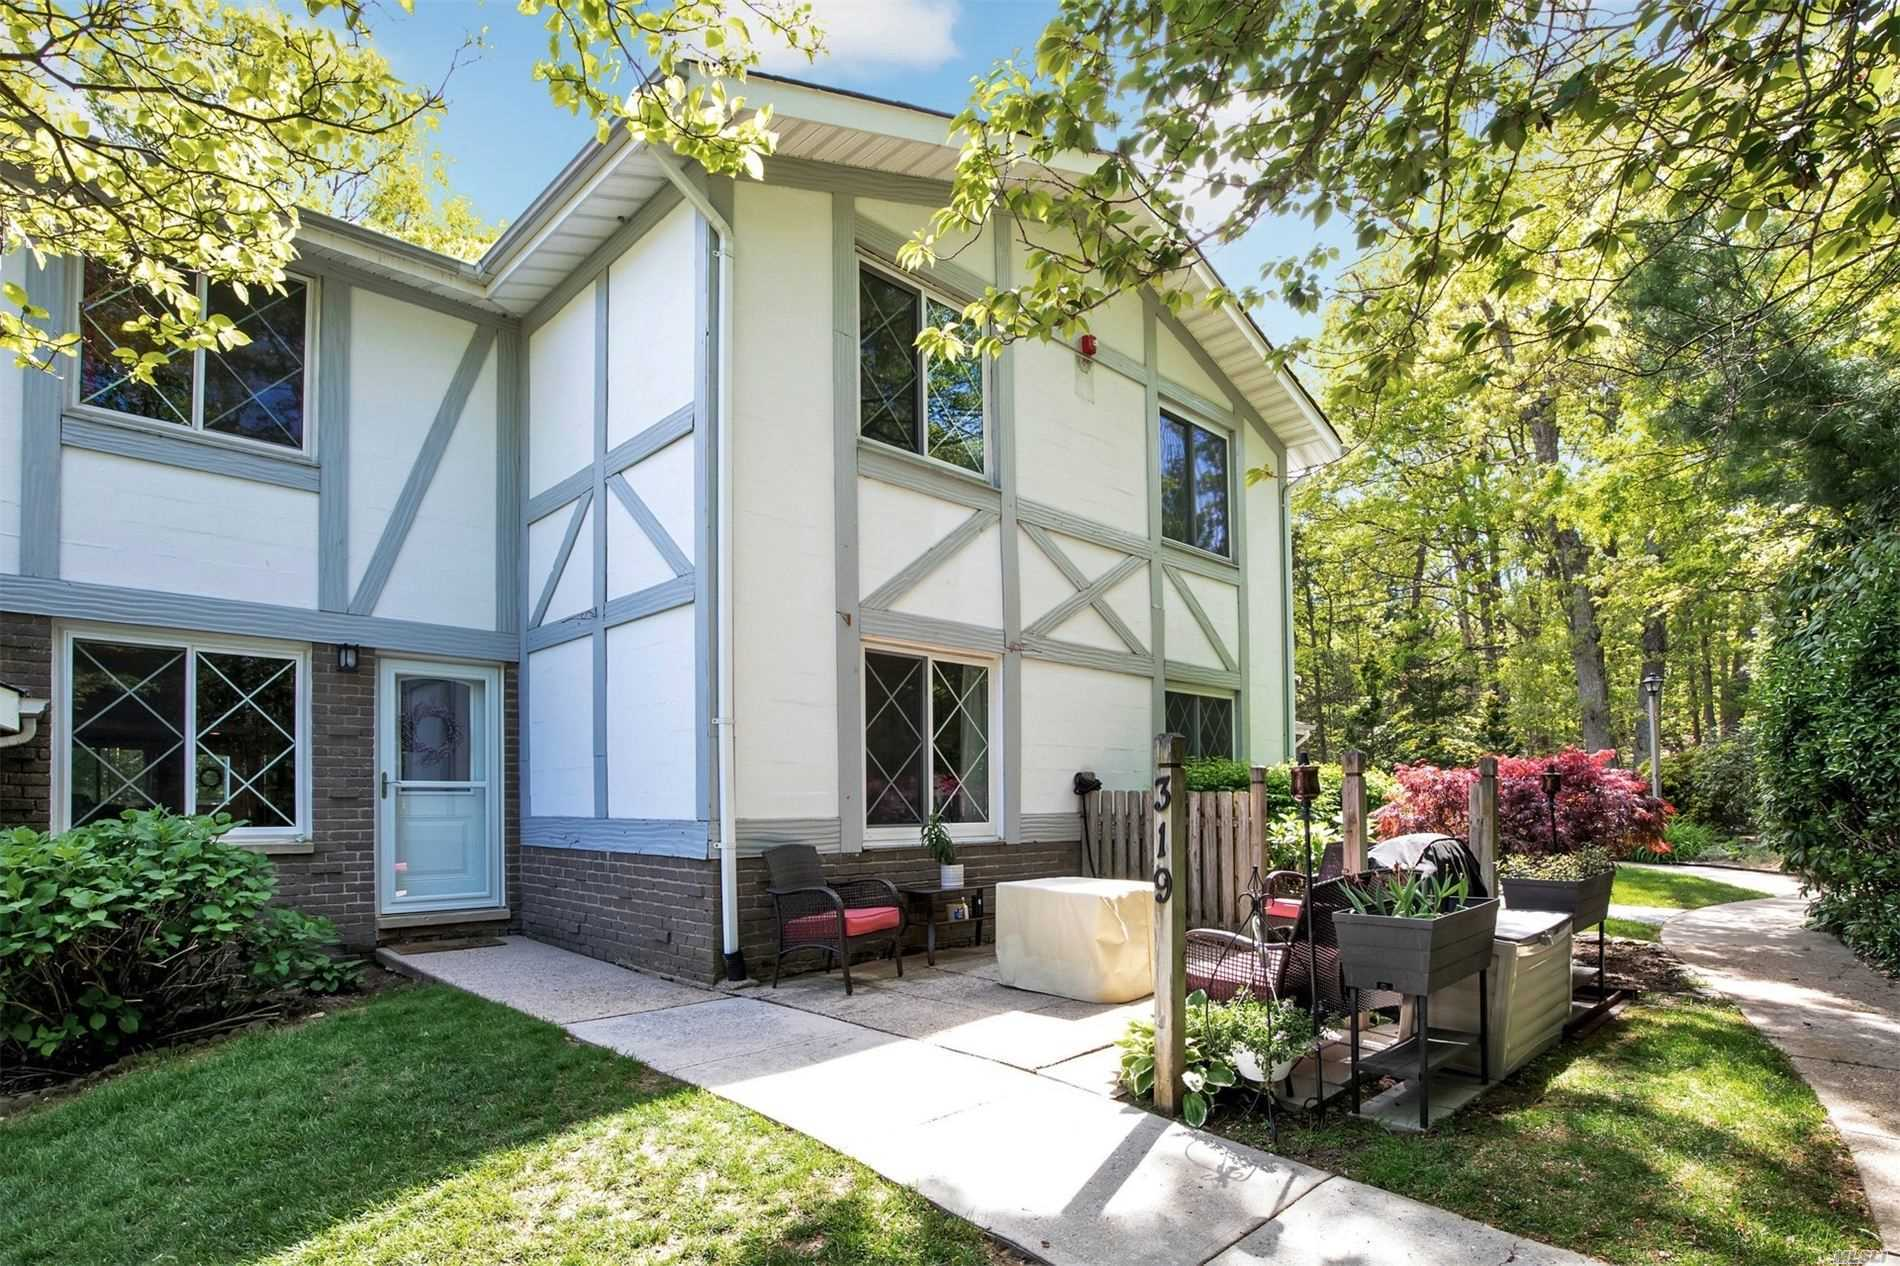 Property for sale at 319 Clubhouse Ct, Coram NY 11727, Coram,  New York 11727